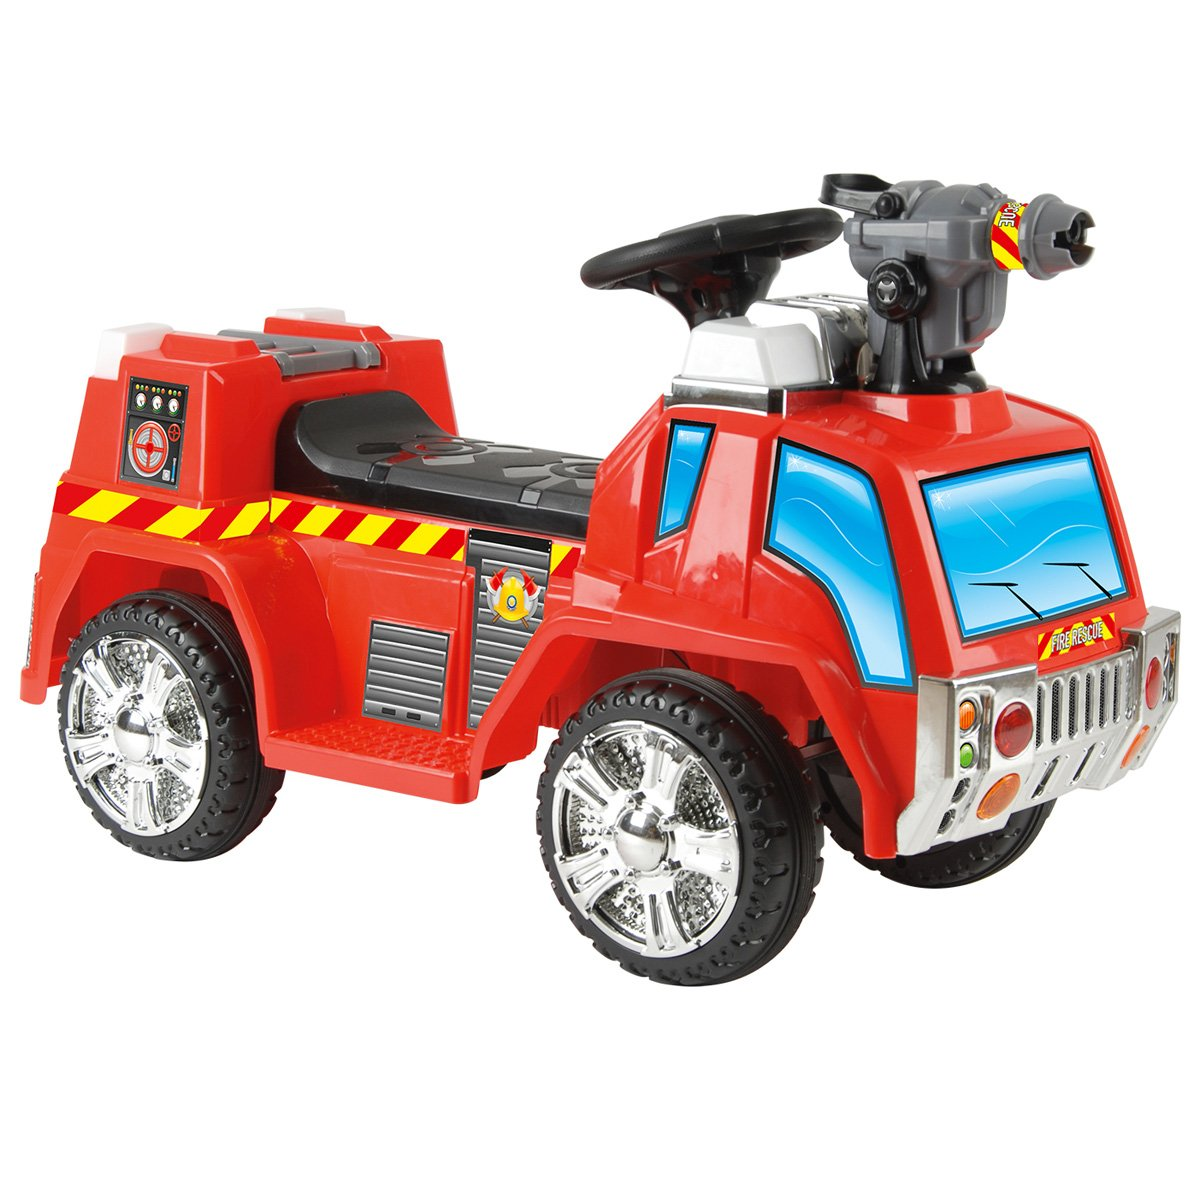 Charles Bentley Toyrific 6v Battery Powered Electric Fire Engine Ride on Car Truck Vehicle With Bubble Gun Function Age 3-6 Years